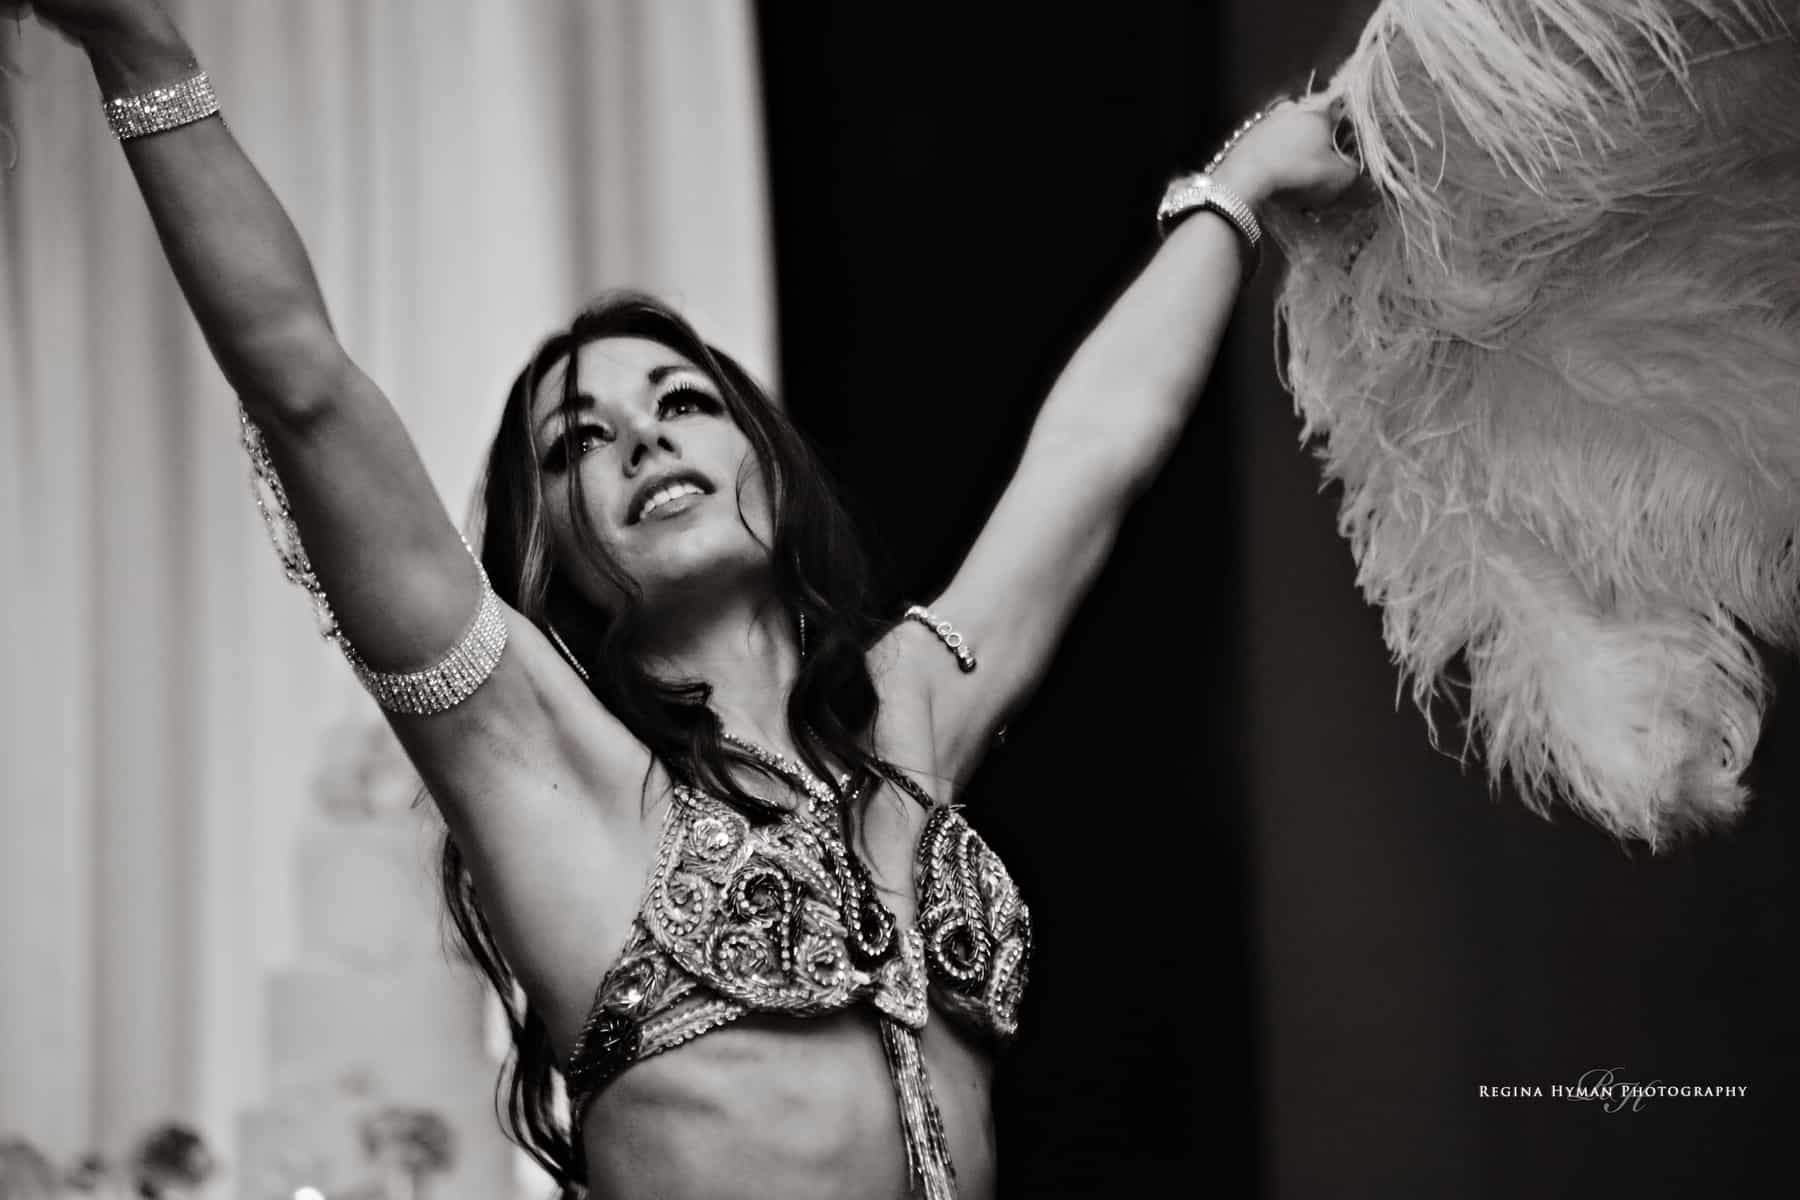 Belly Dancer Carrara Nour performs with feather fans at a wedding at the Ballroom at Church Street in Orlando